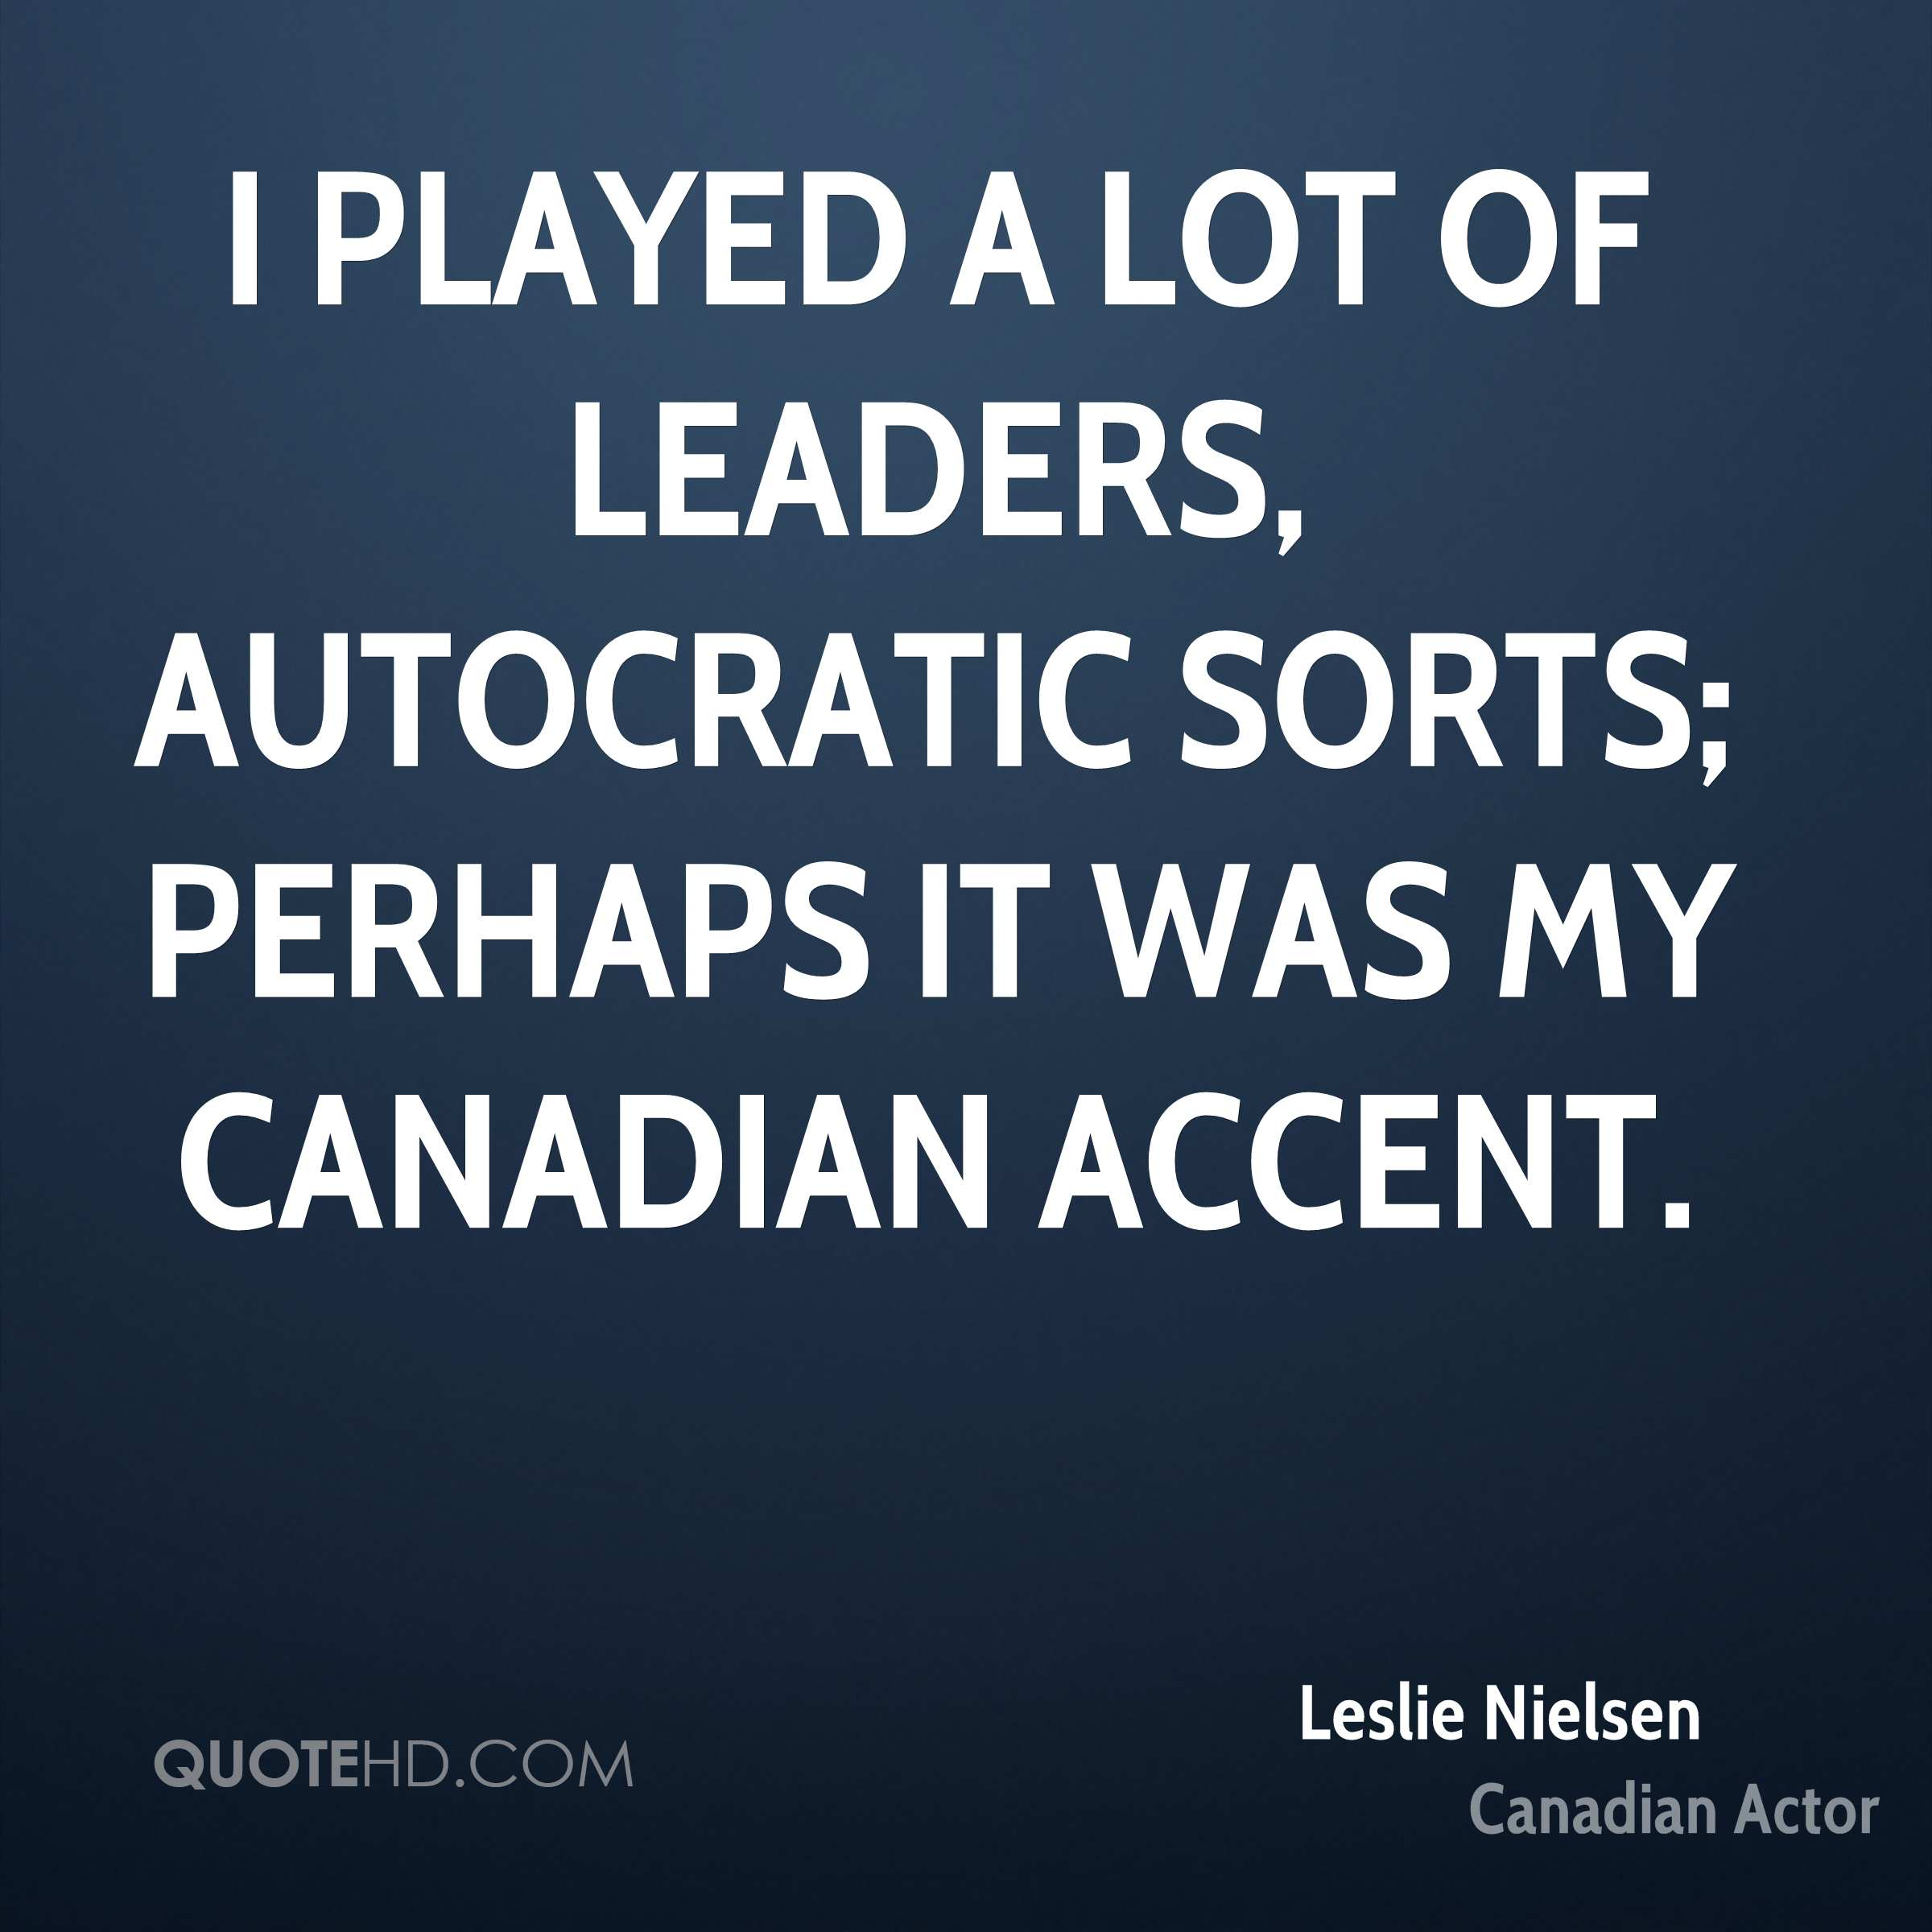 I played a lot of leaders, autocratic sorts; perhaps it was my Canadian accent.